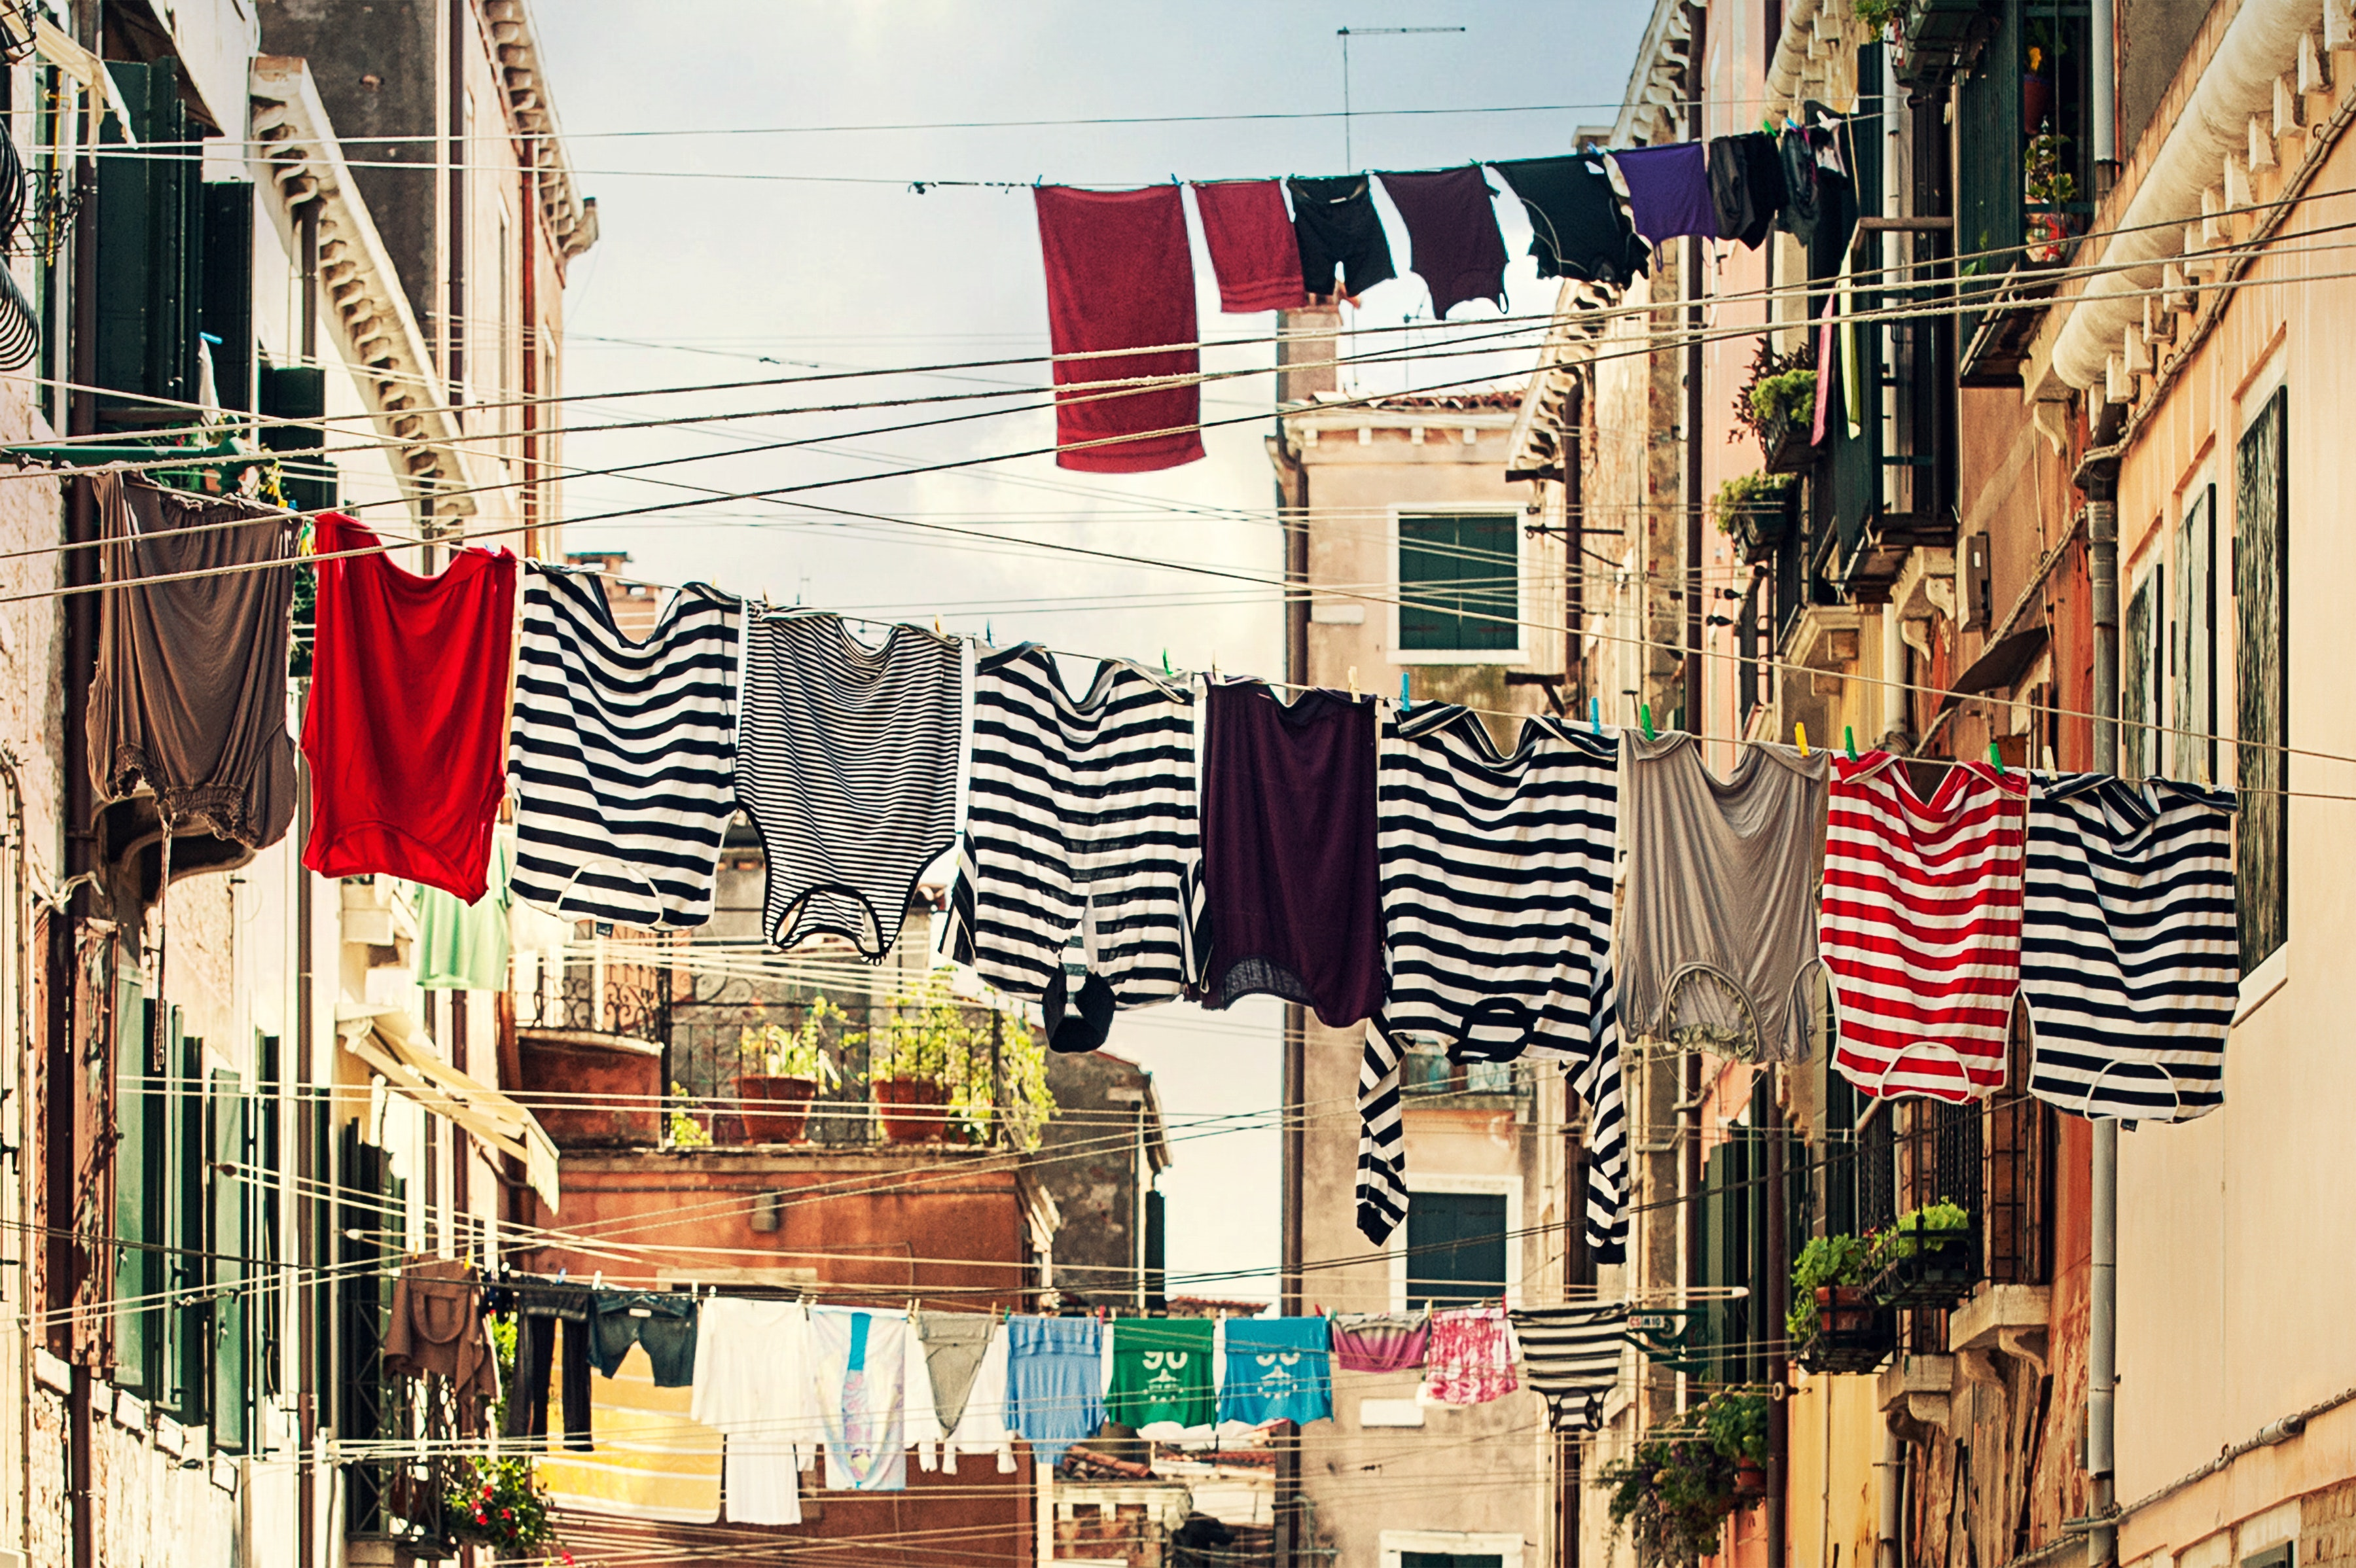 Striped Shirt Hanging on Gray Wire Between Beige Painted Wall Building during Daytime, Buildings, Clothes, Clothes line, Laundry, HQ Photo